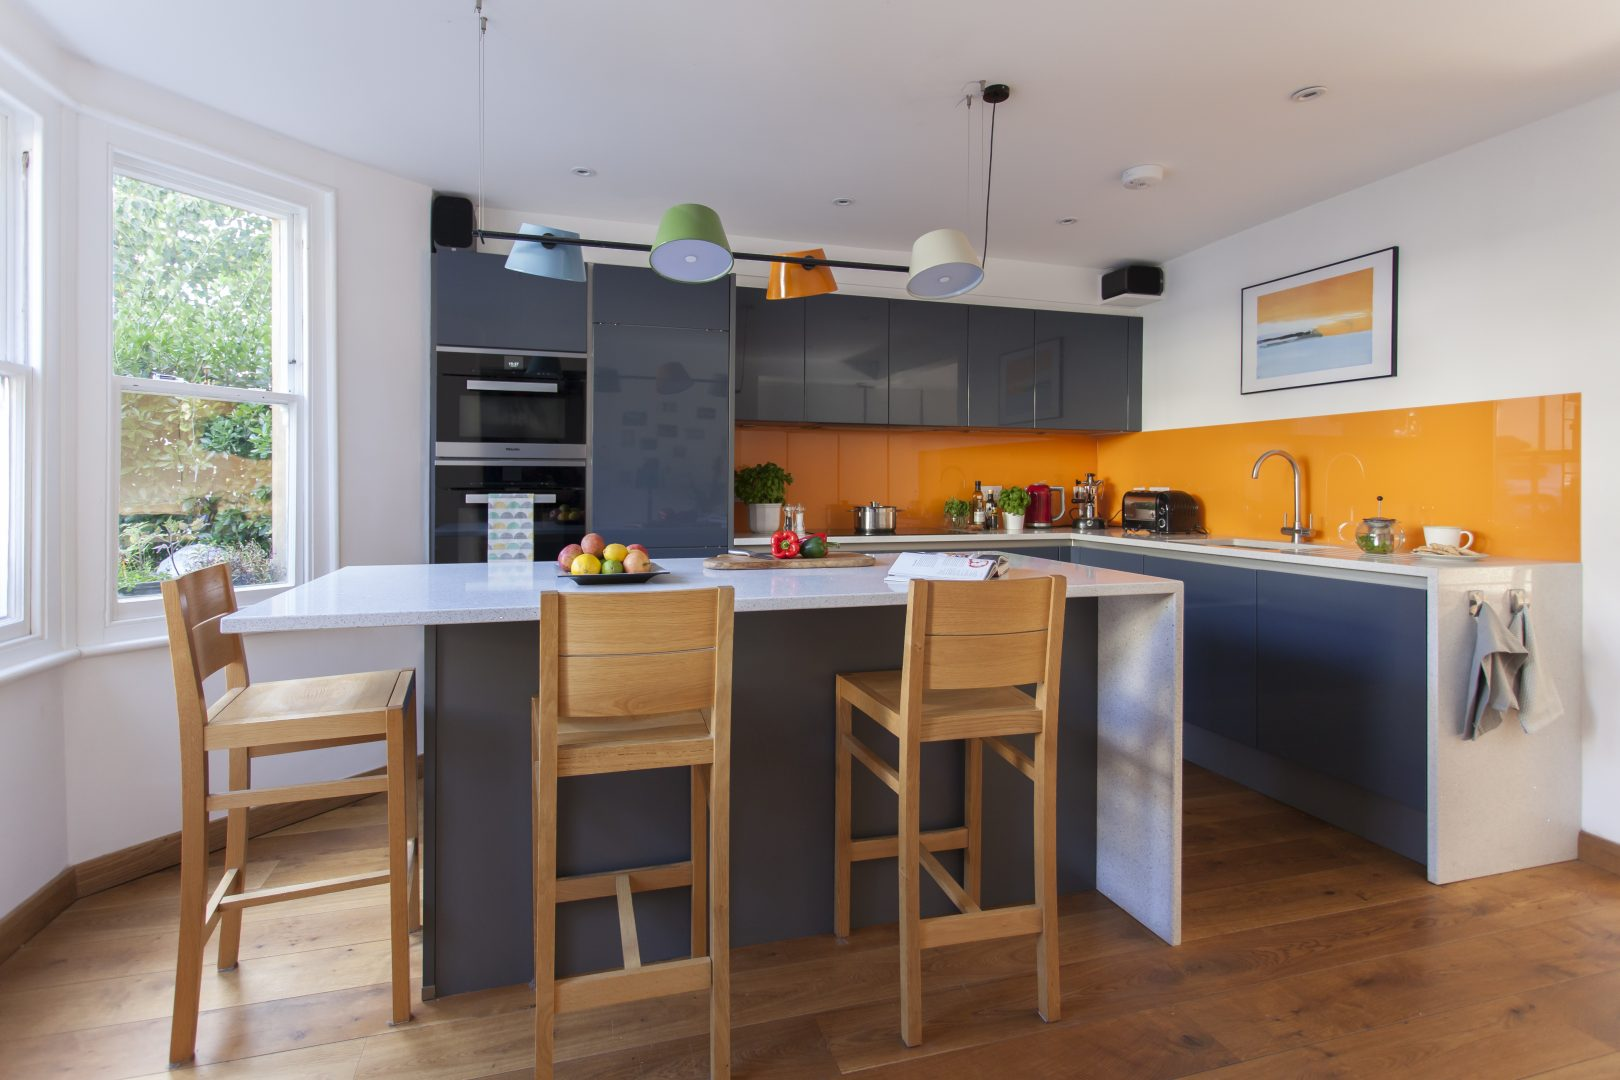 colourful quirky kitchen with orange splashback